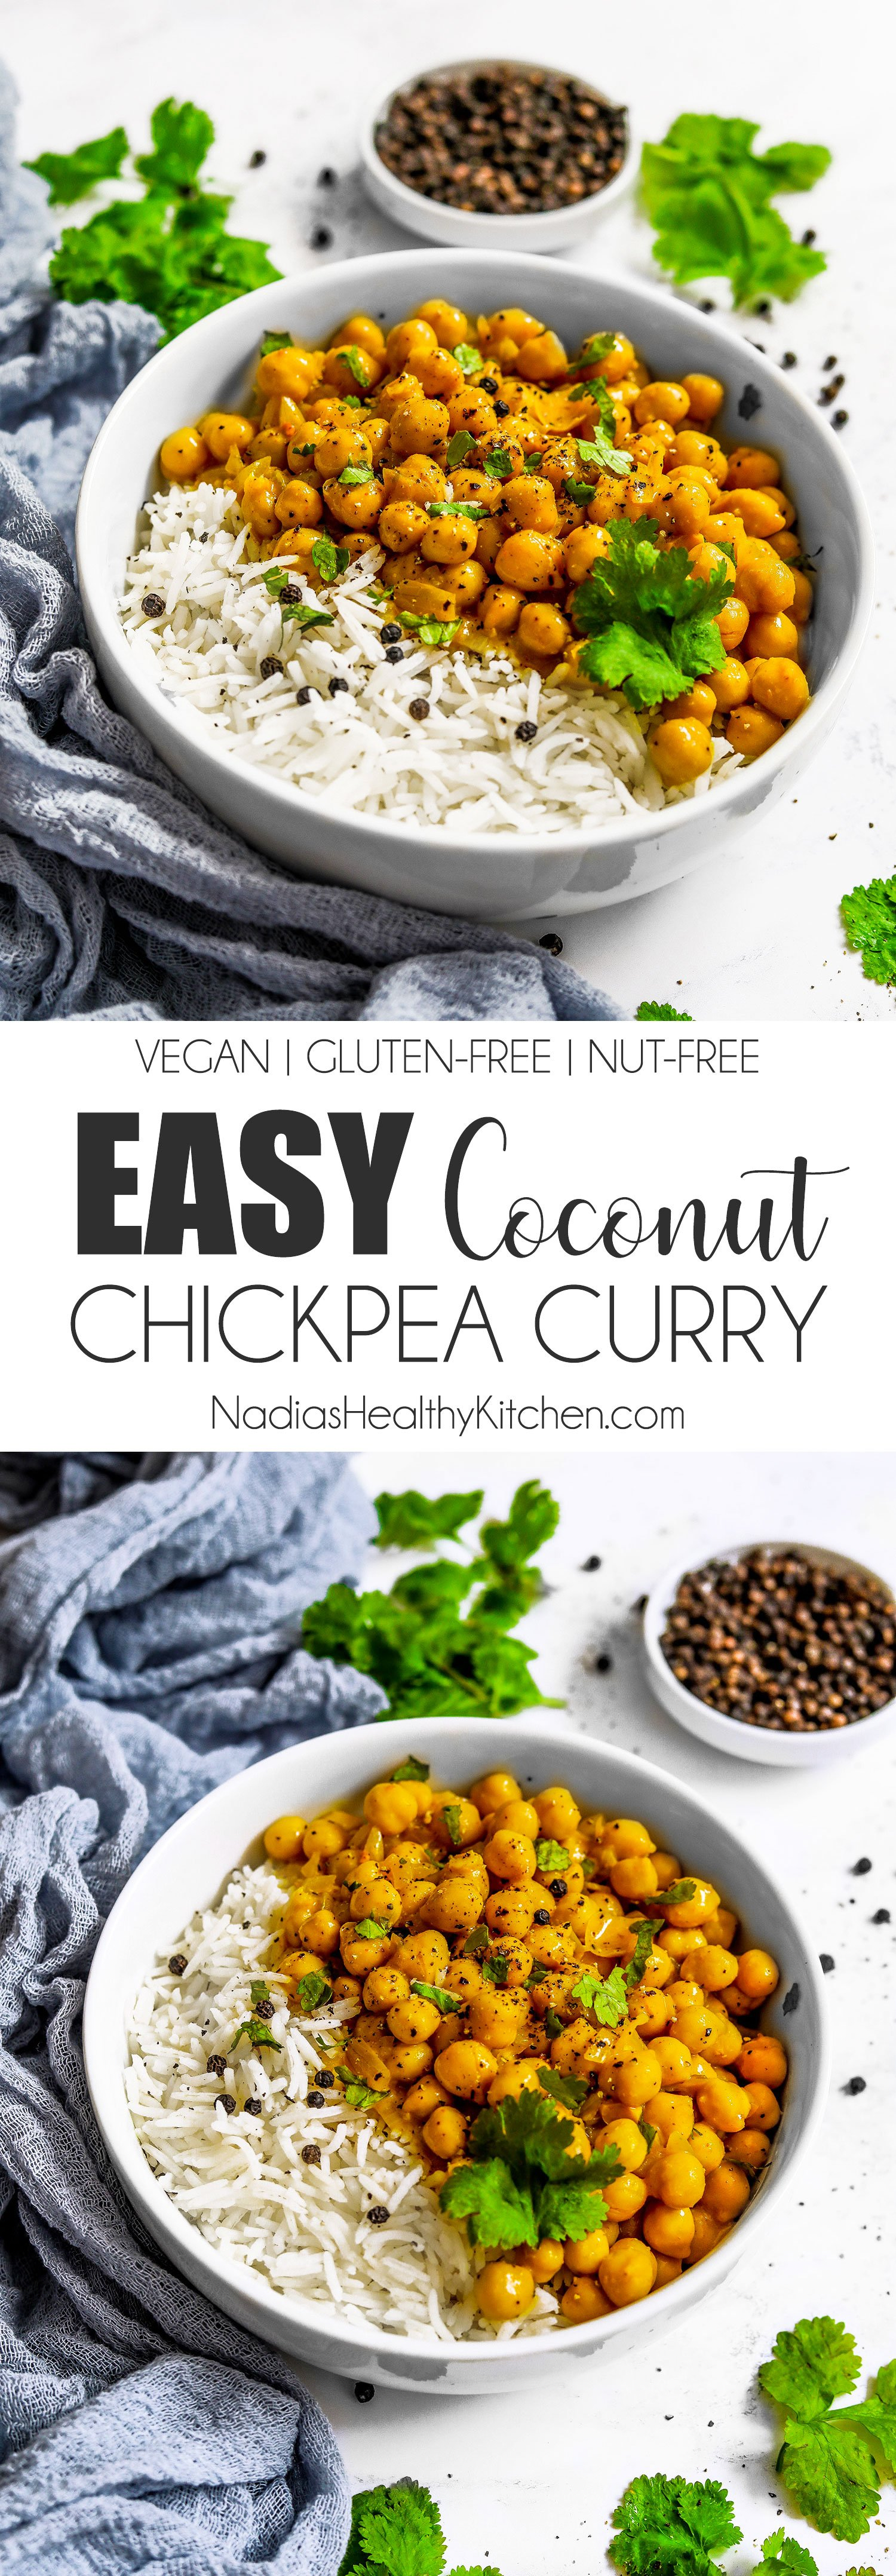 Easy Coconut Chickpea Curry